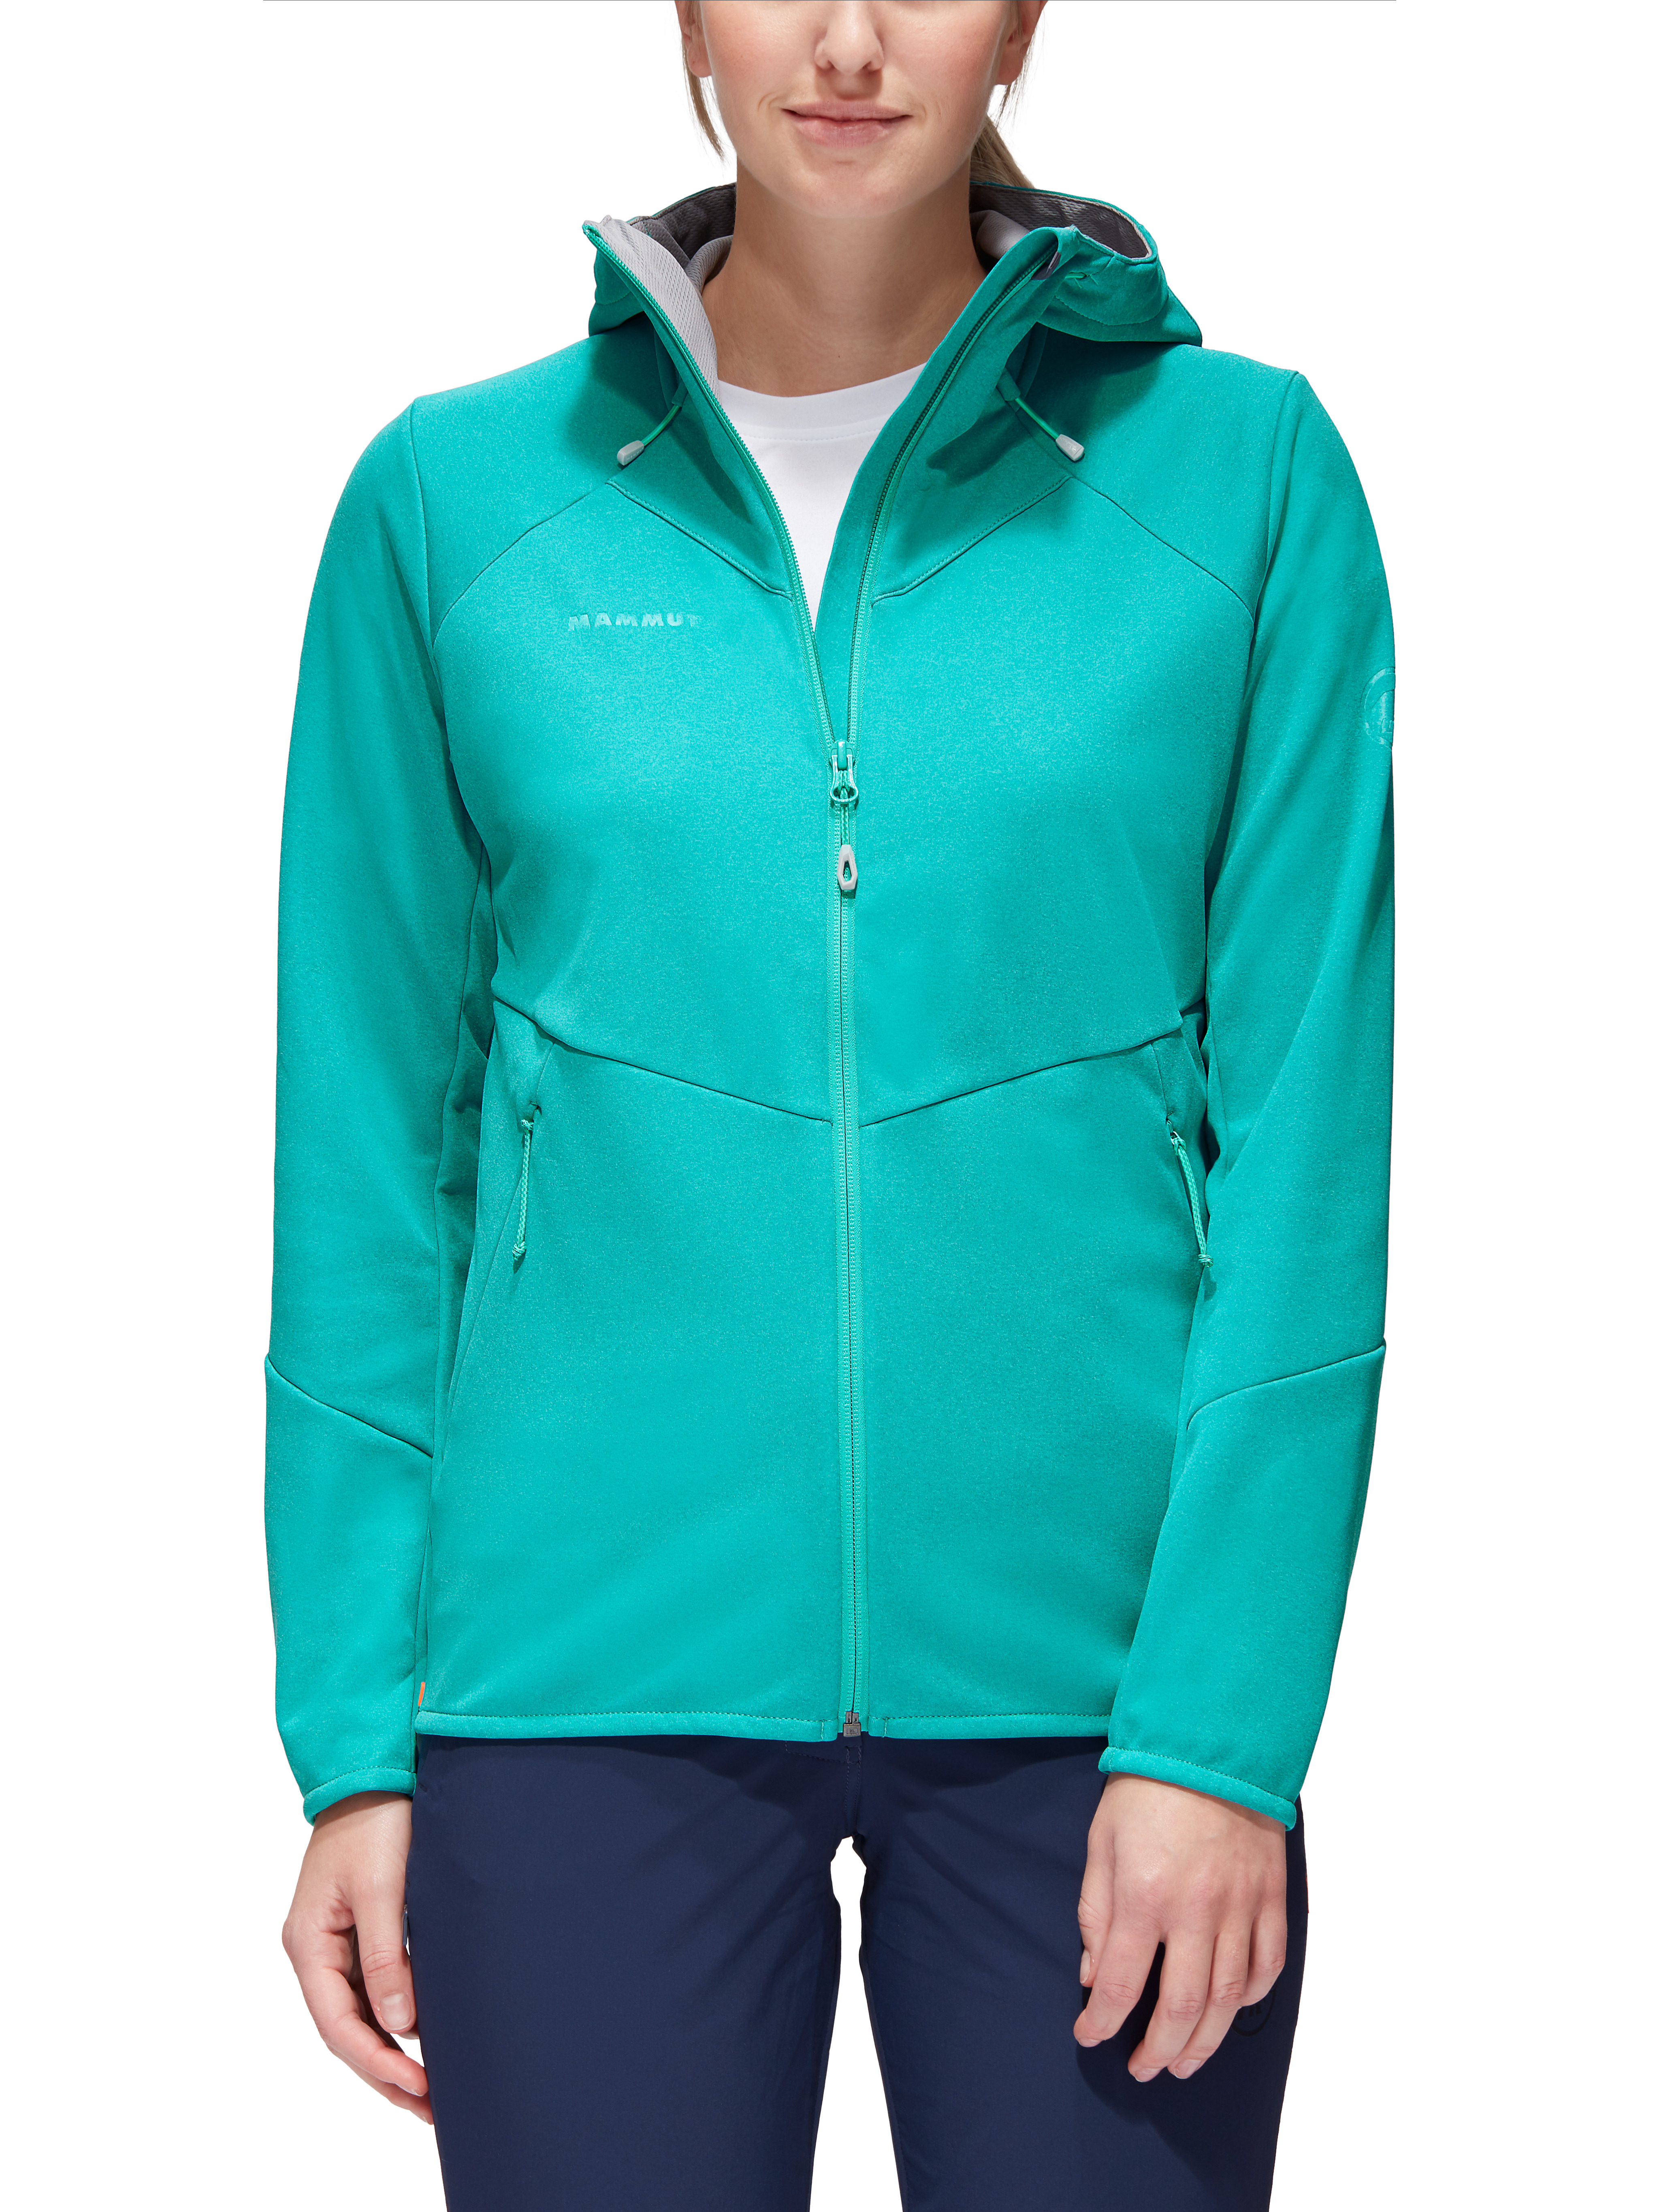 Ultimate VI SO Hooded Jacket Women product image